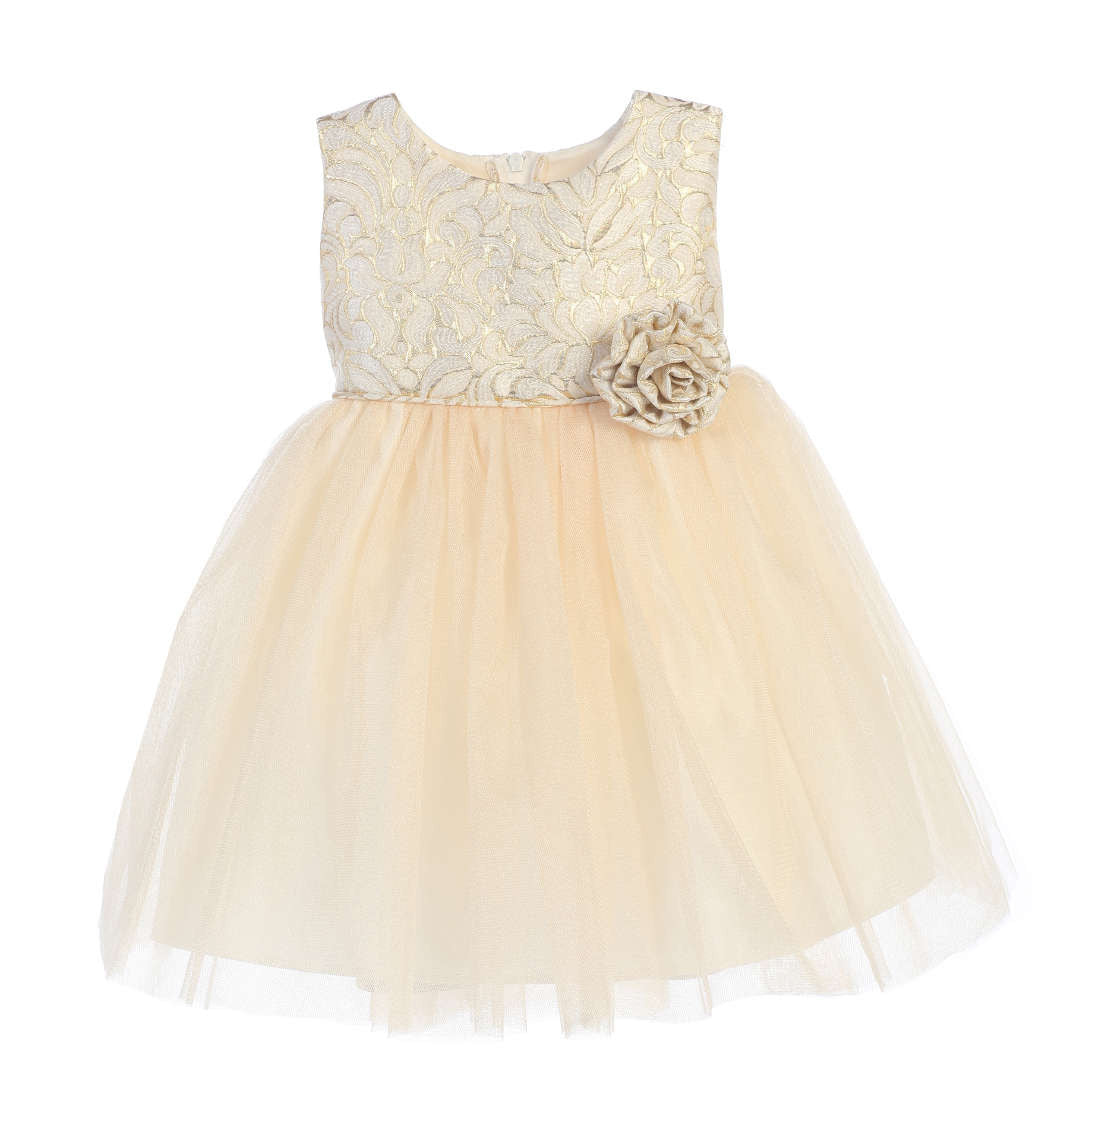 Sweet Kids Ornate Jacquard Multi Tone Tulle Dress - Ivory, SK671